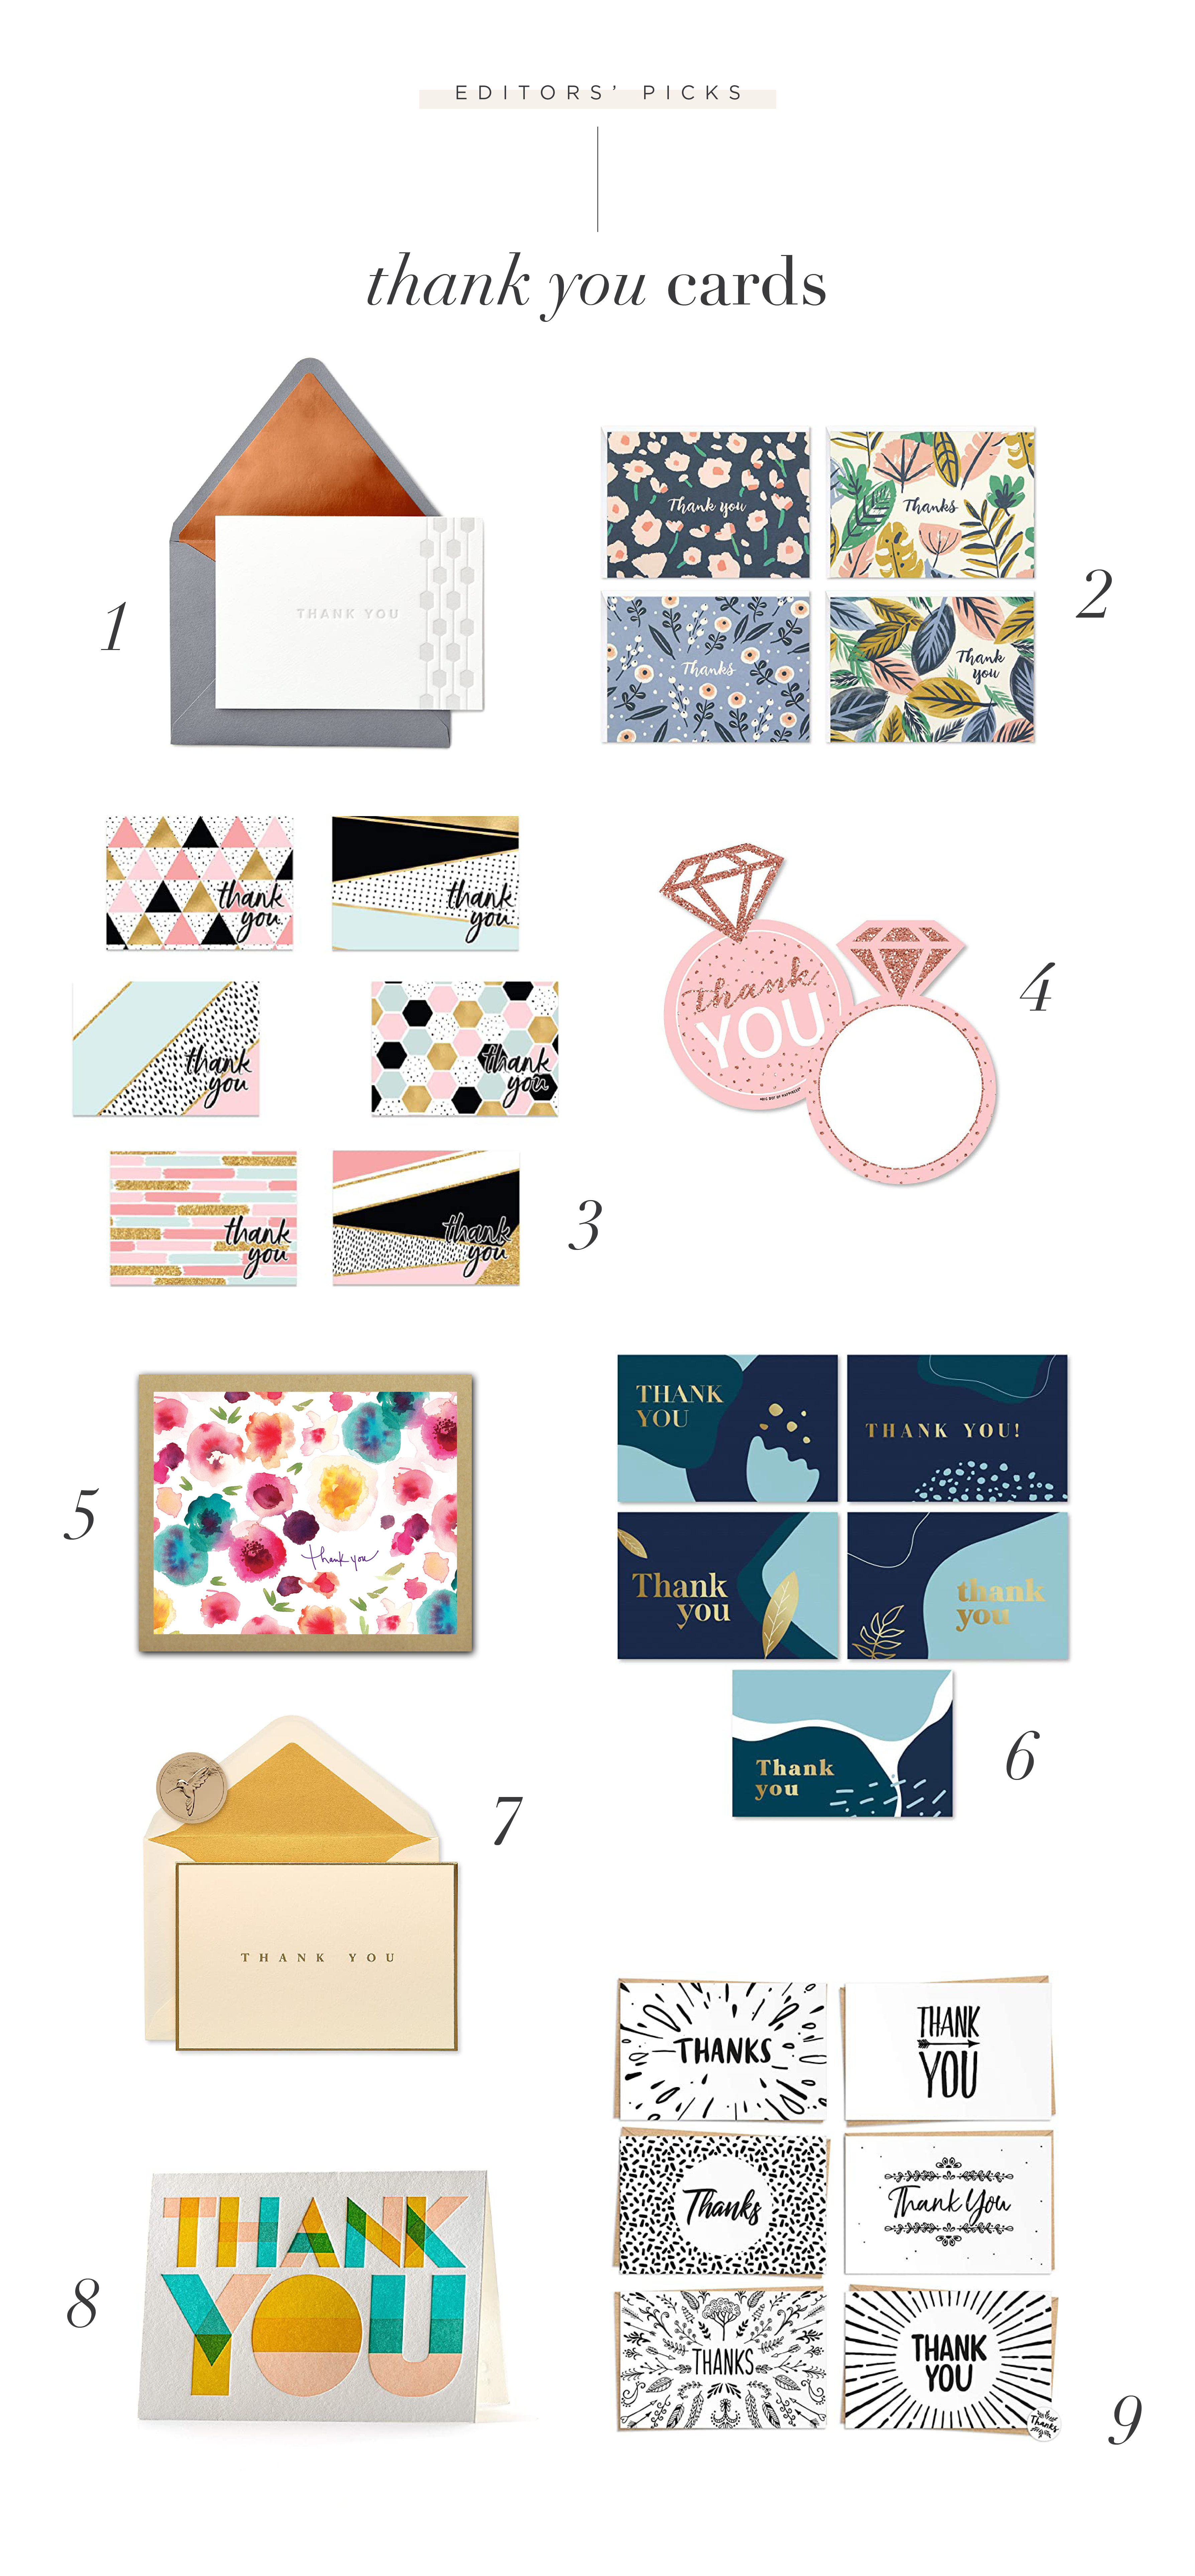 Tips & Tricks for Sending Out Your Thank You Cards (Plus Our Faves!)